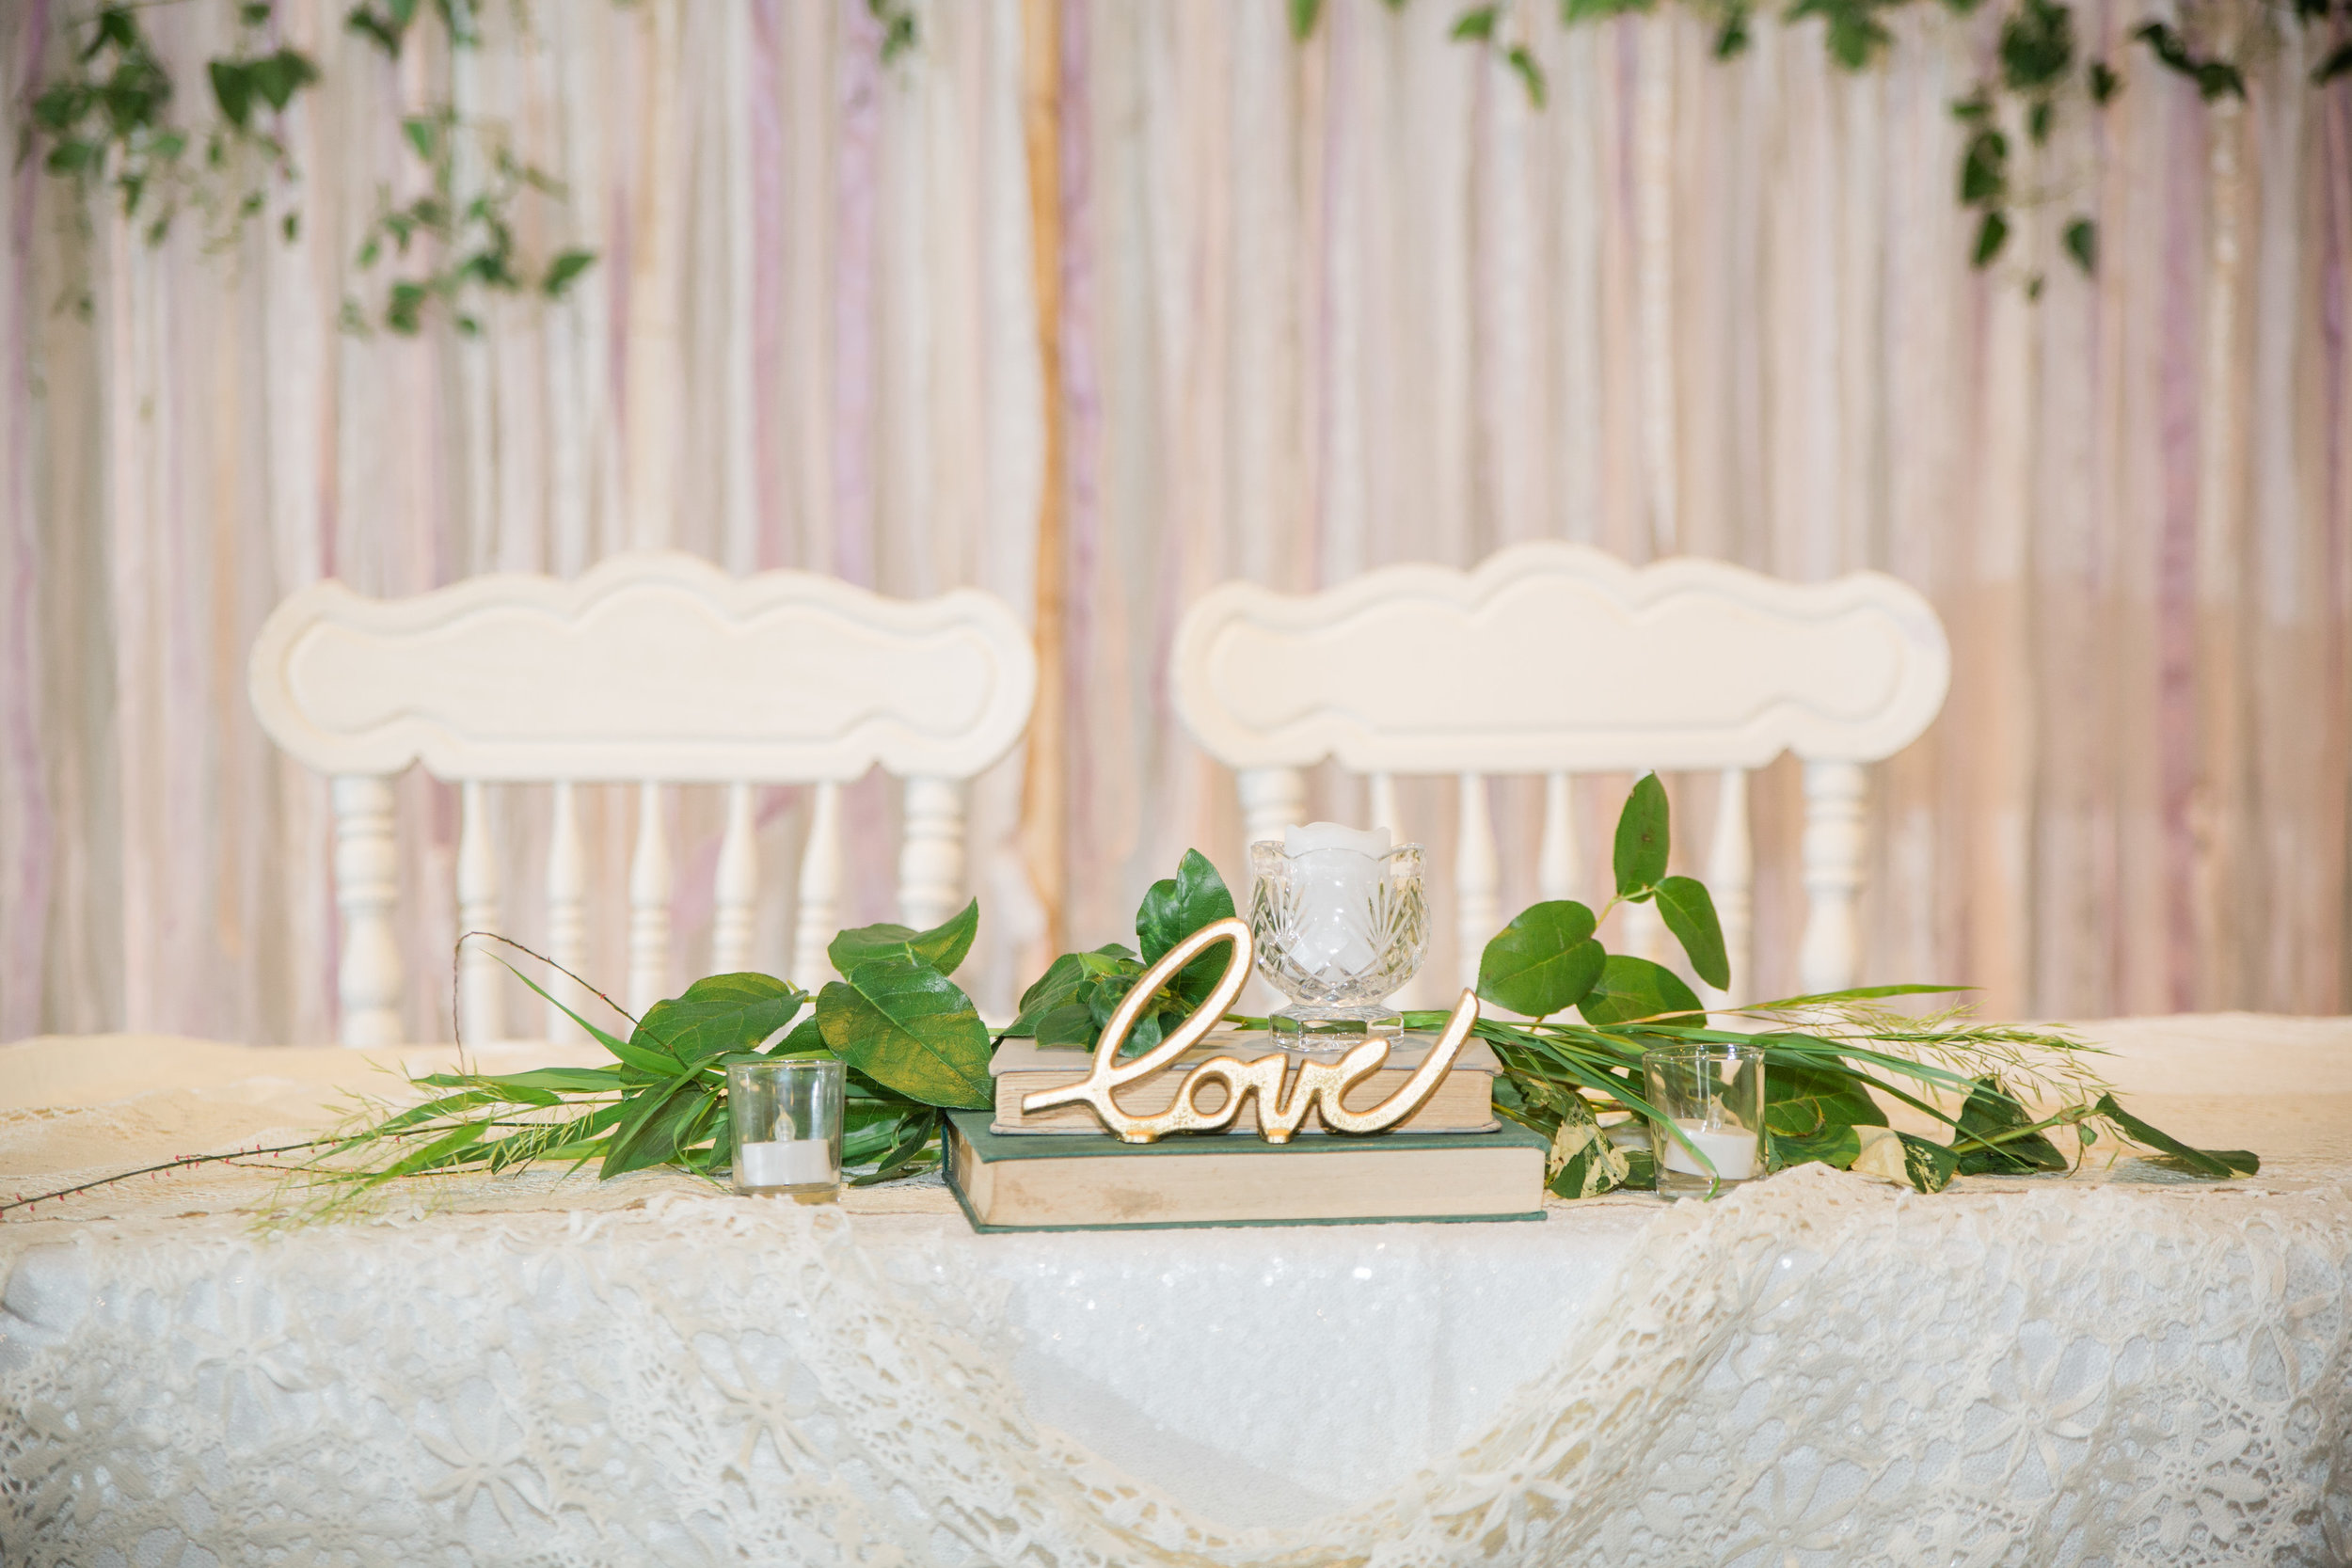 des moines wedding florists and rentals // white themed wedding decor with candles and old books and vintage white chairs